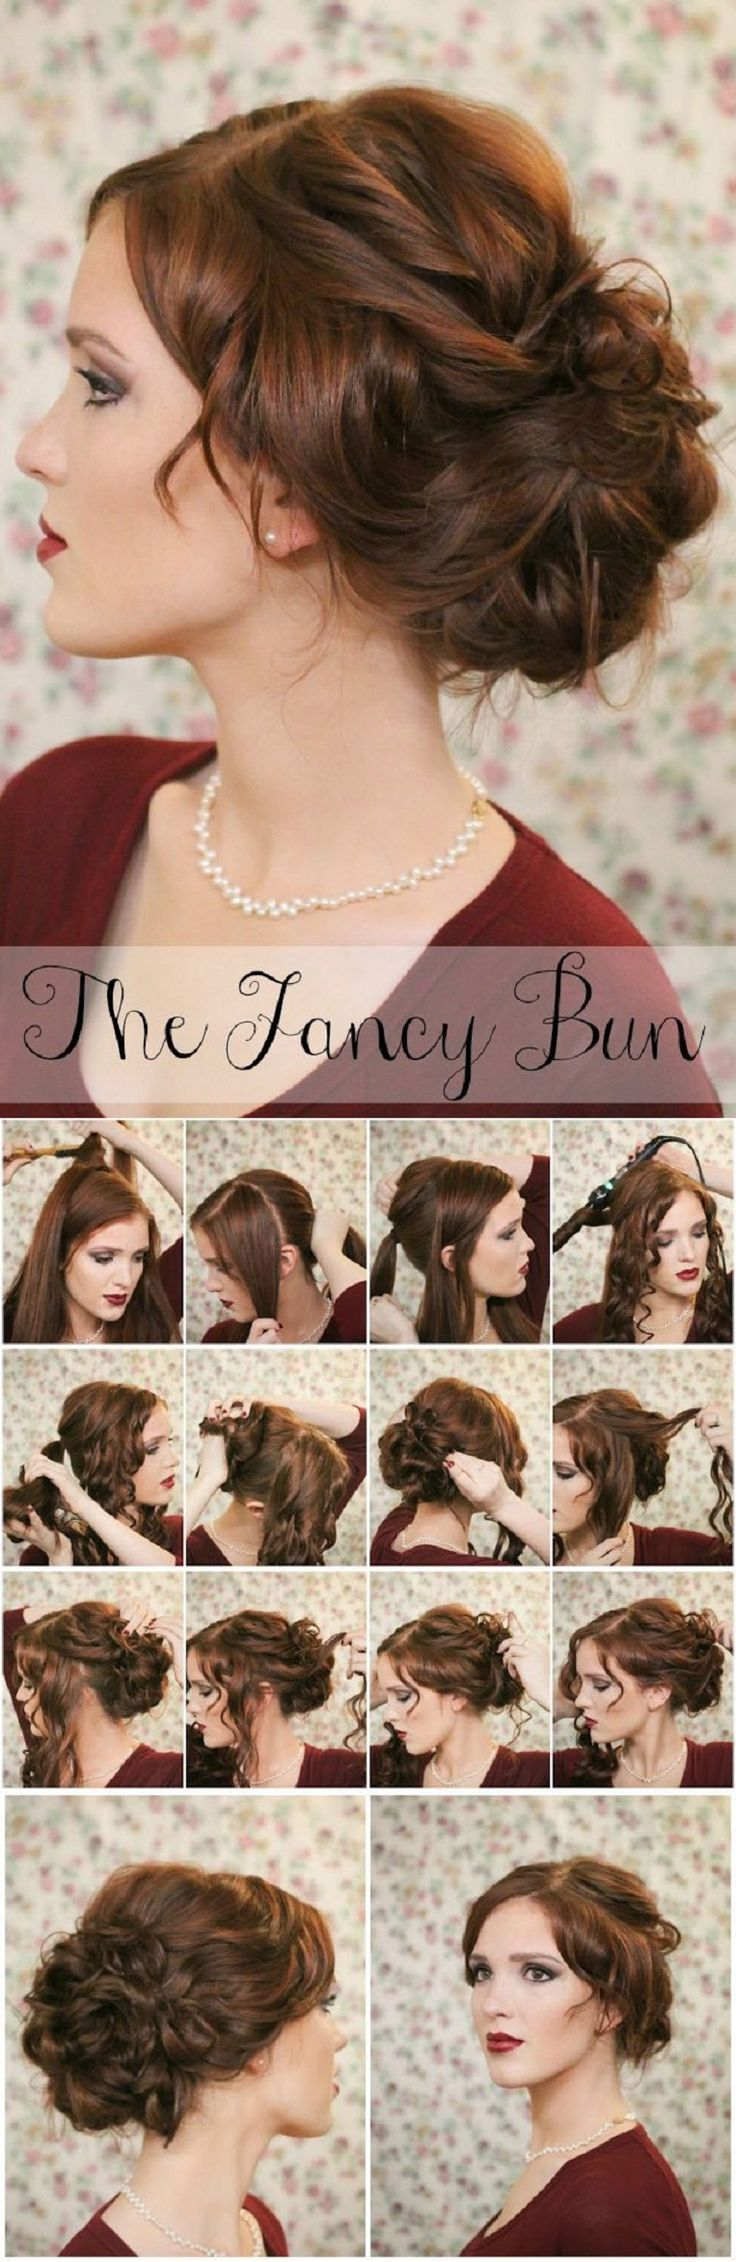 Super Easy Knotted Bun Updo - 12 Vintage-Inspired DIY Hairstyle Tutorials | GleamItUp